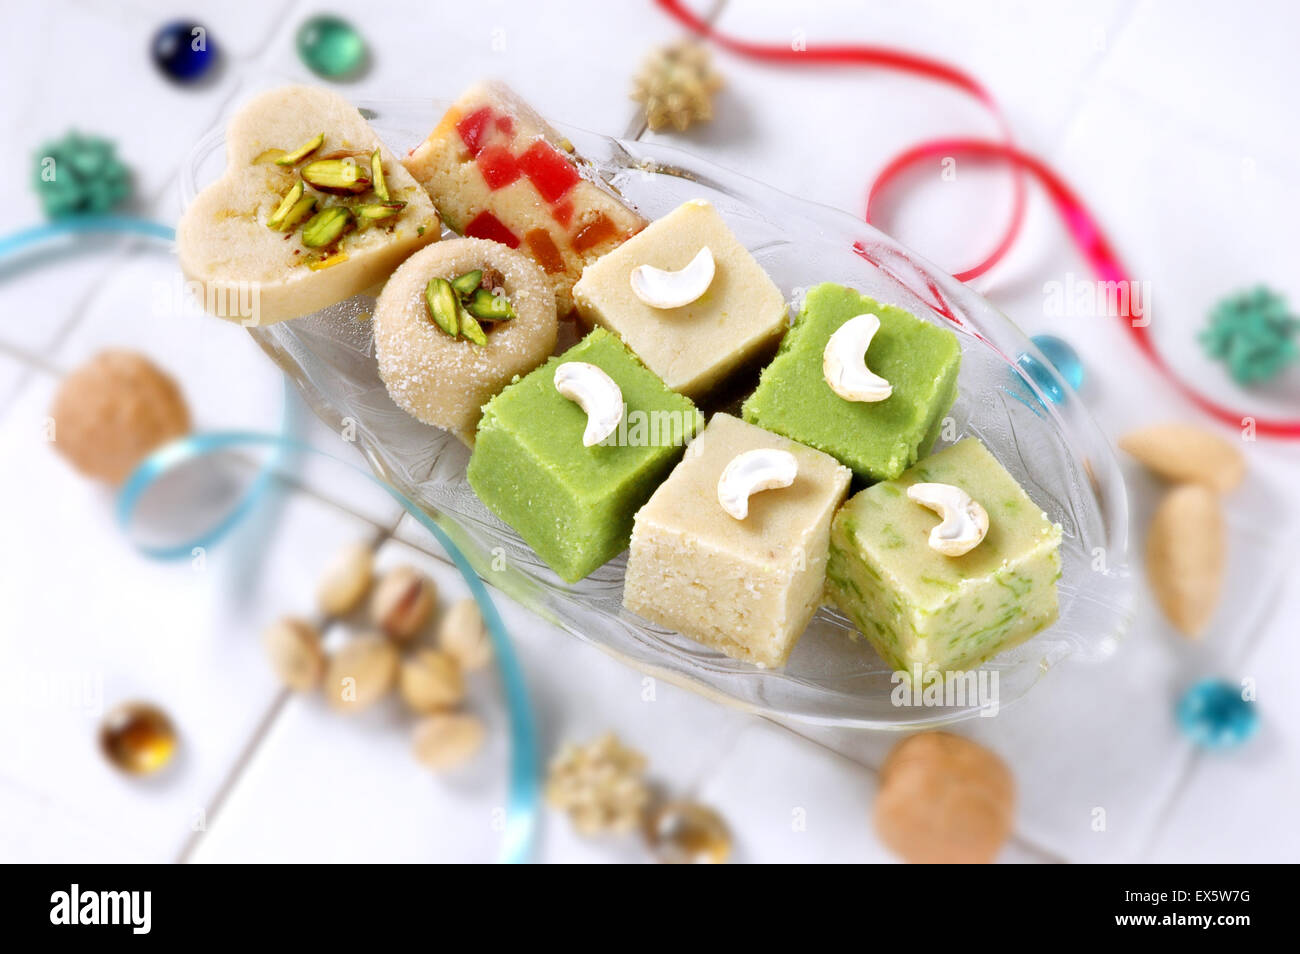 Delicious collection of khoya mitahi (sweets made by condensed milk) - Stock Image